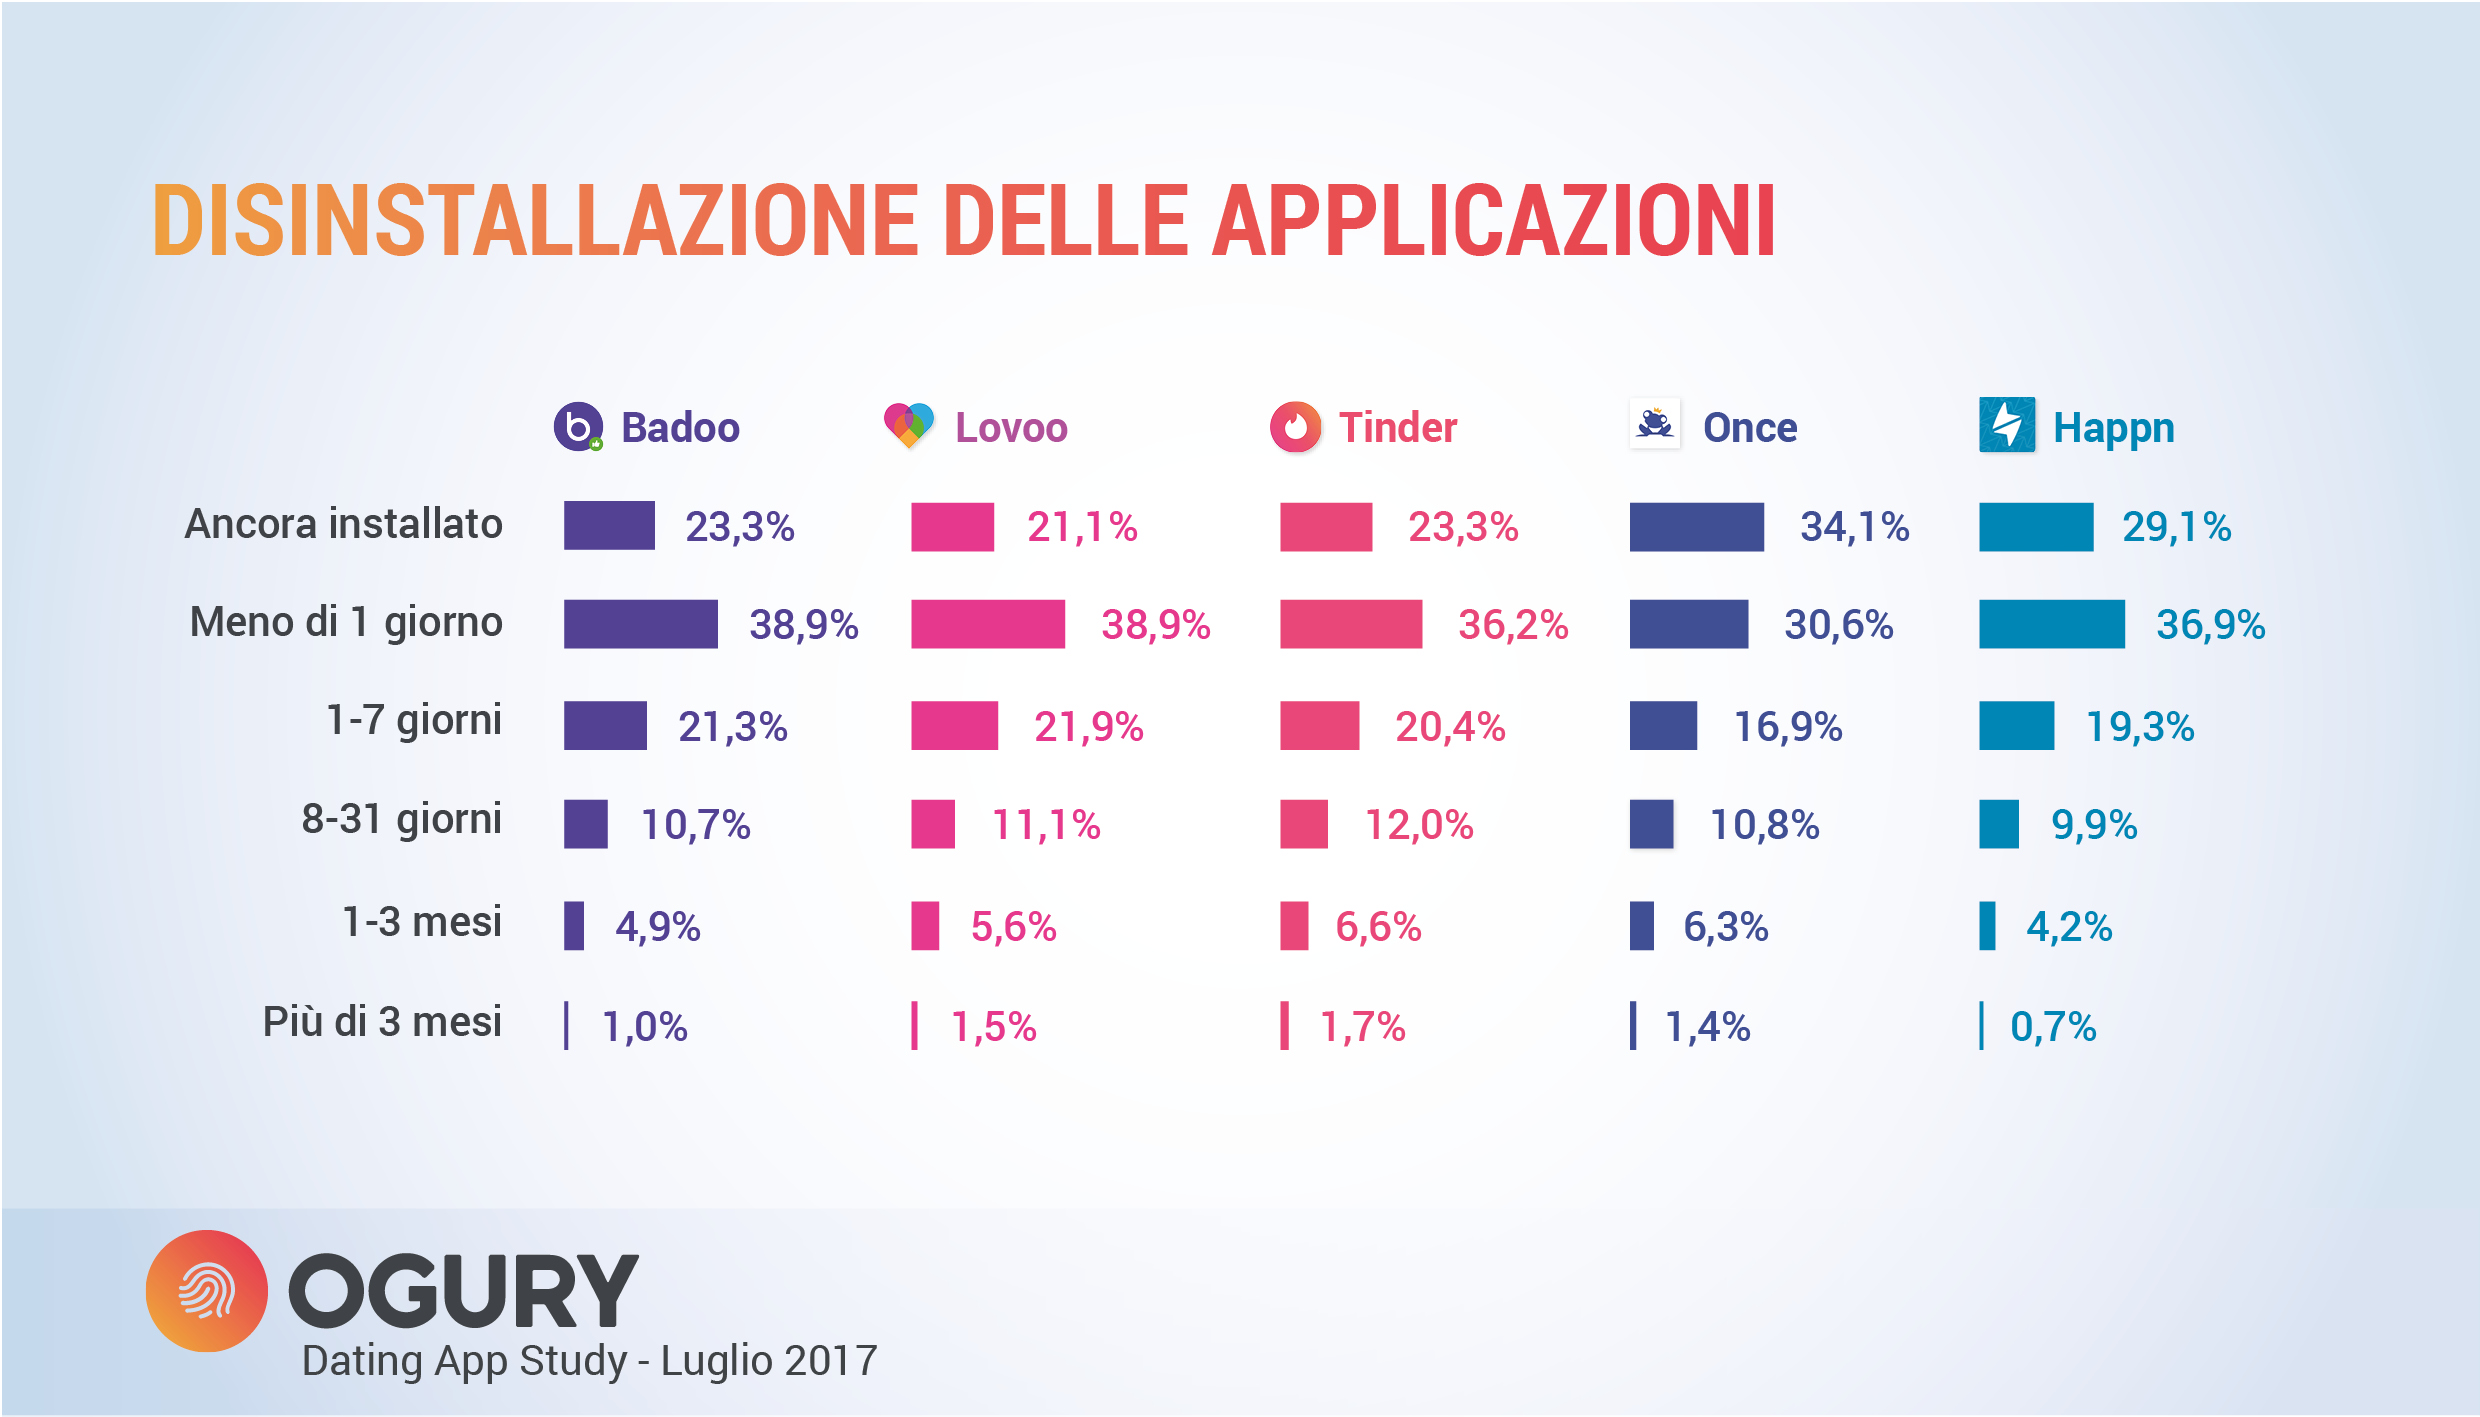 Incontri in America vs. dating in altri paesi